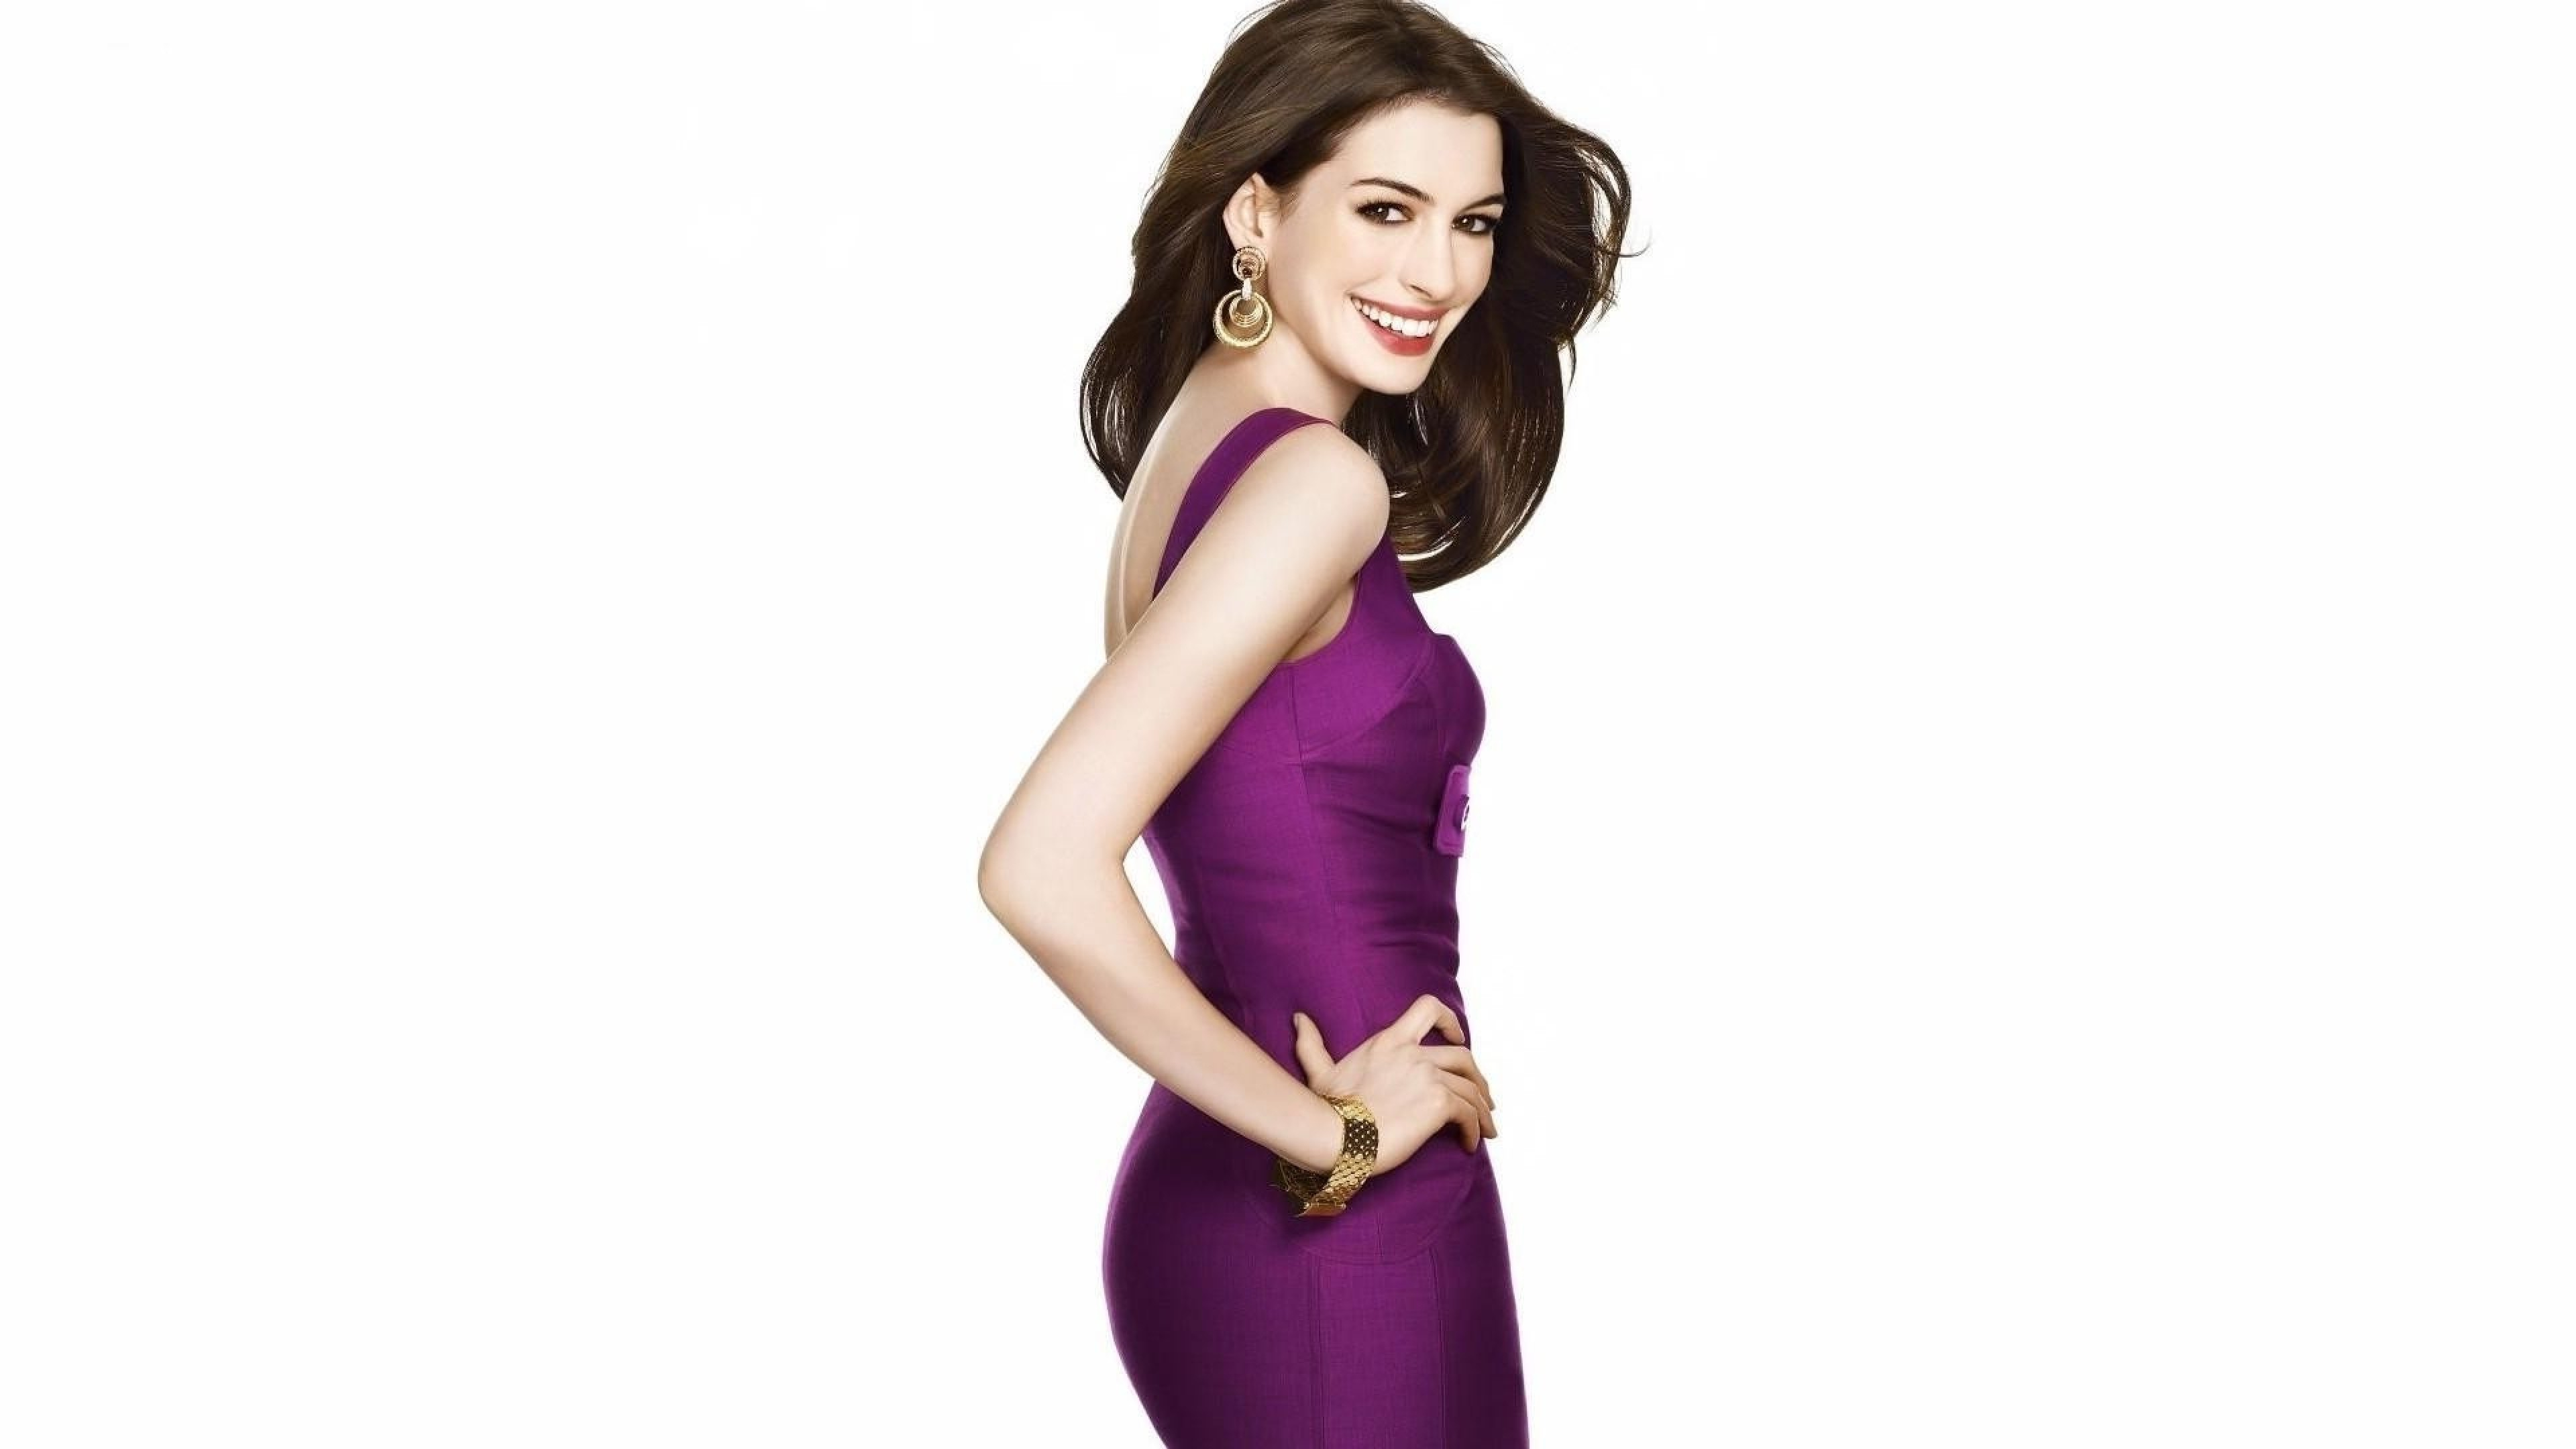 anne hathway 1536855781 - Anne Hathway - girls wallpapers, celebrities wallpapers, anne hathaway wallpapers